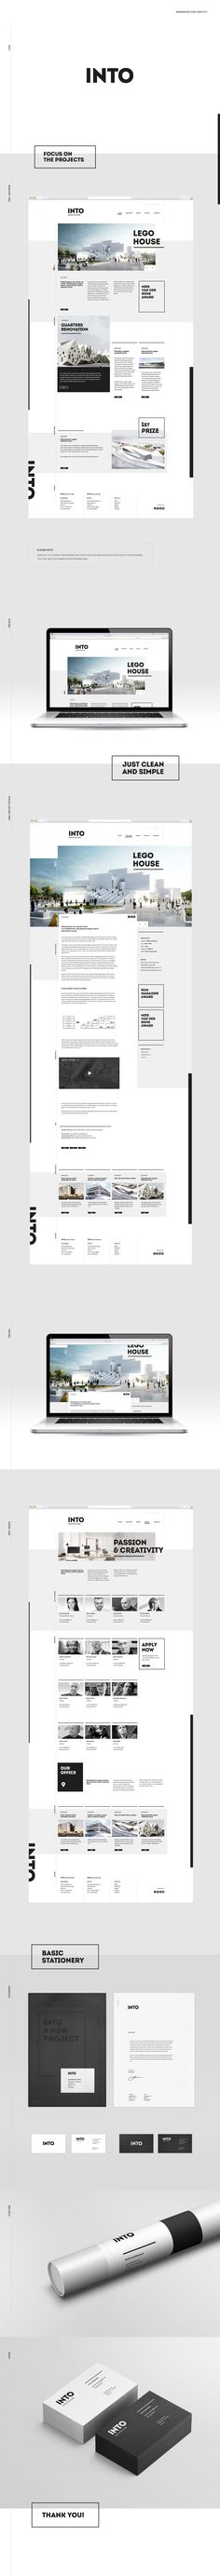 INTO | architecture office on Behance